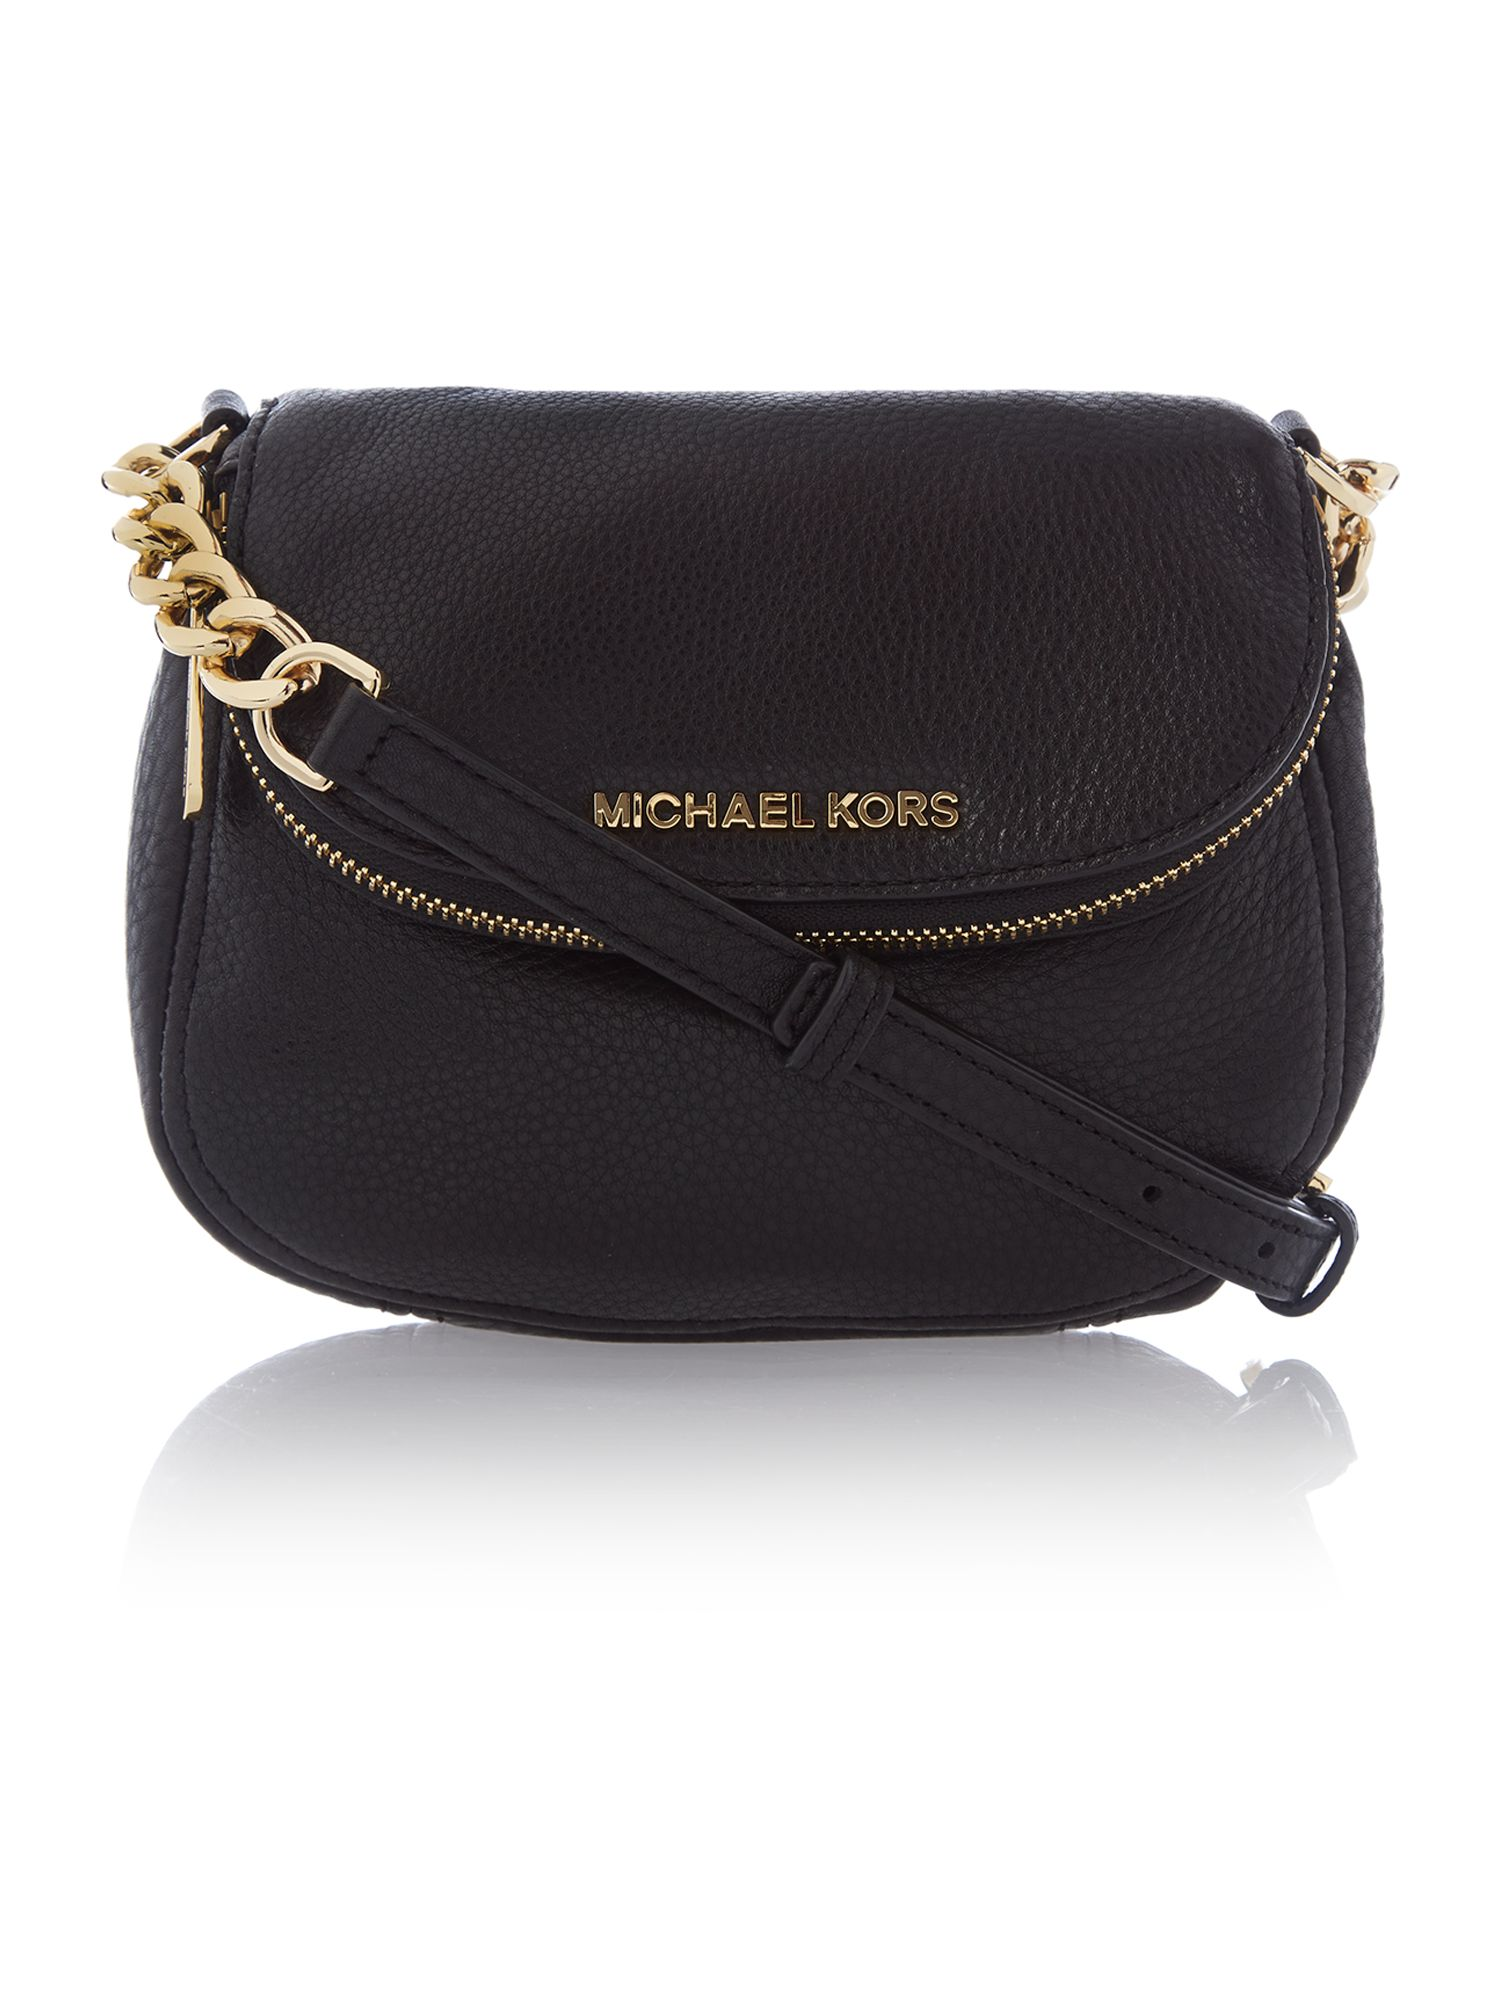 Bedford black flap over cross body bag